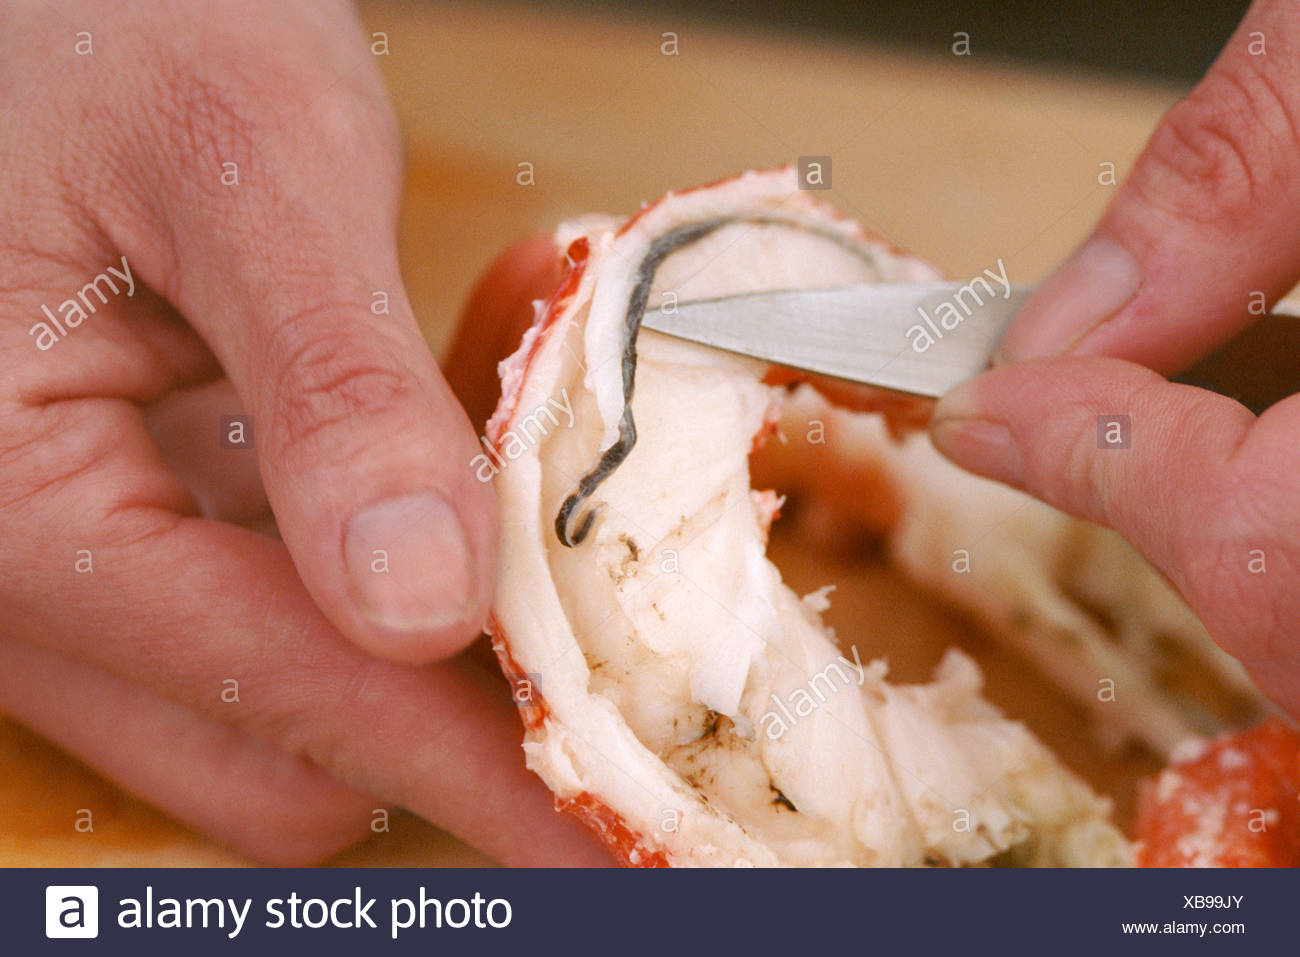 Removing Intestinal Tract From Lobster Tail Meat Stock Photo